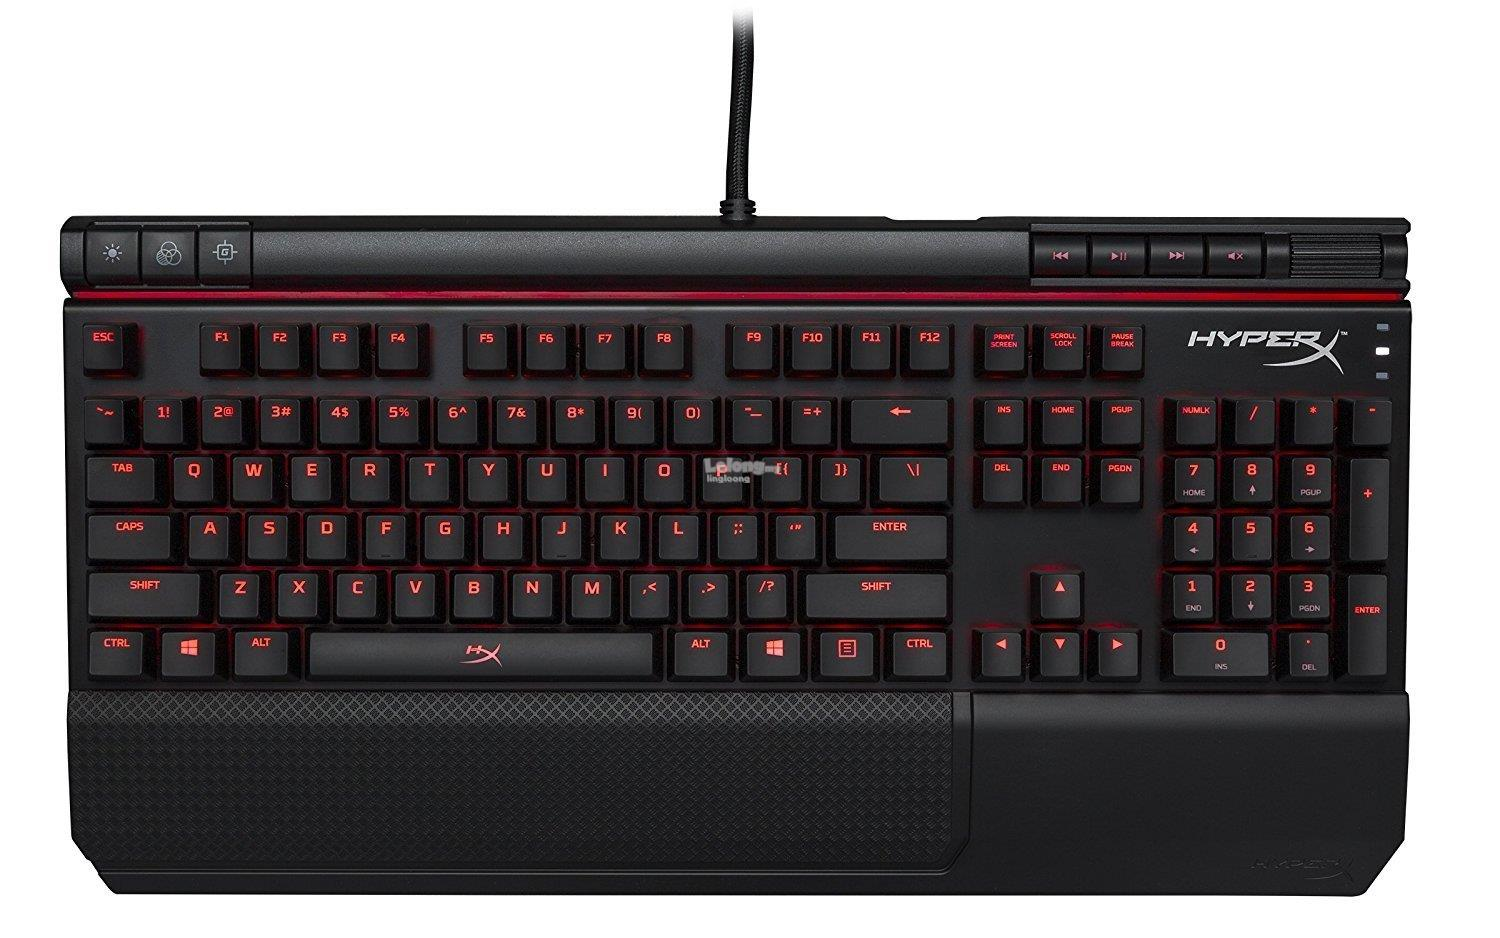 # KINGSTON HyperX Alloy Elite Gaming Keyboard #